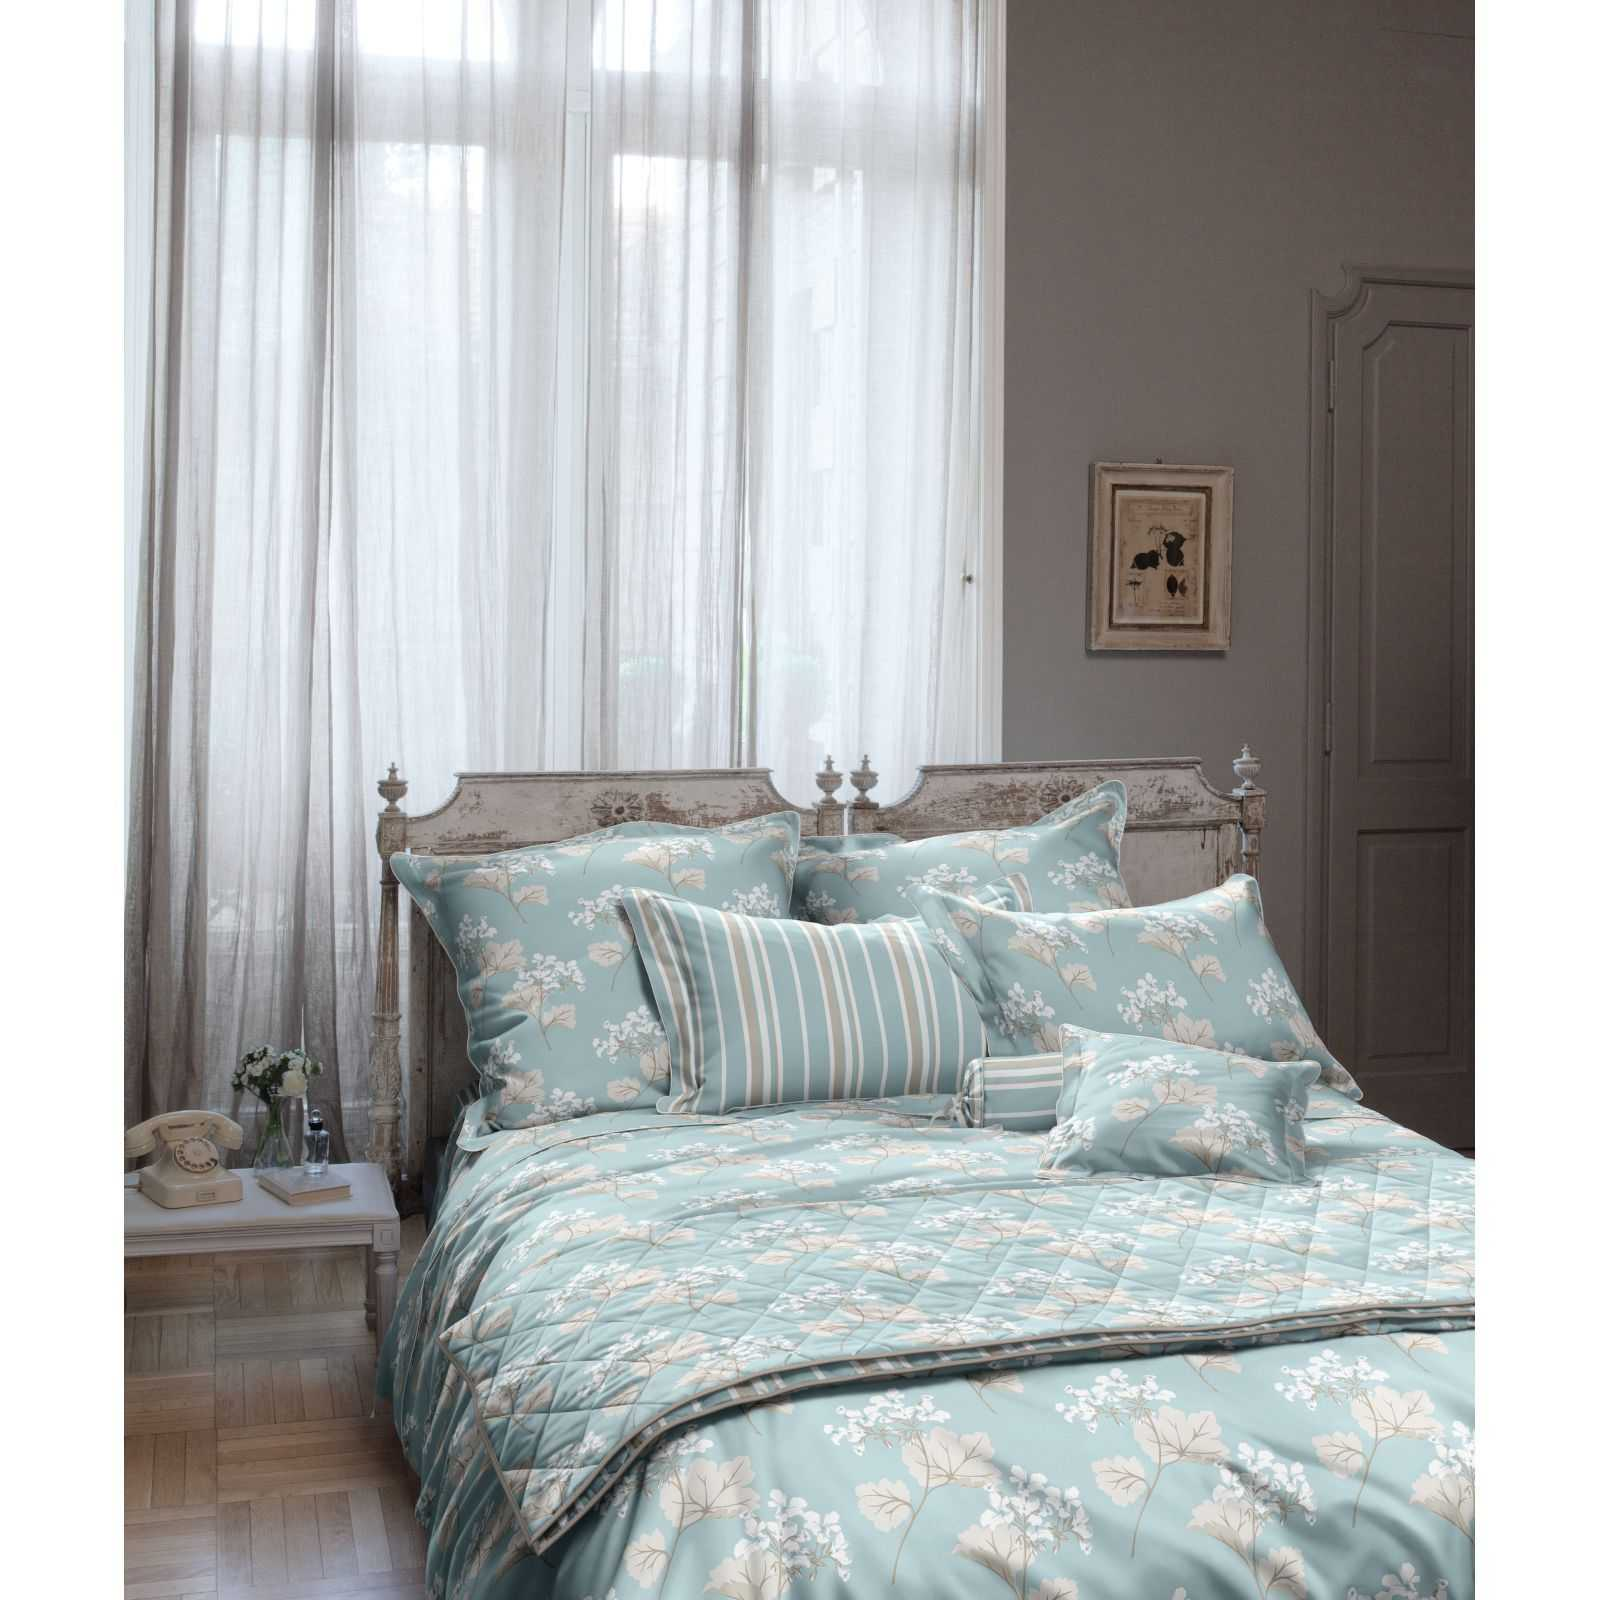 Housse couette laura ashley for Housse de couette laura ashley